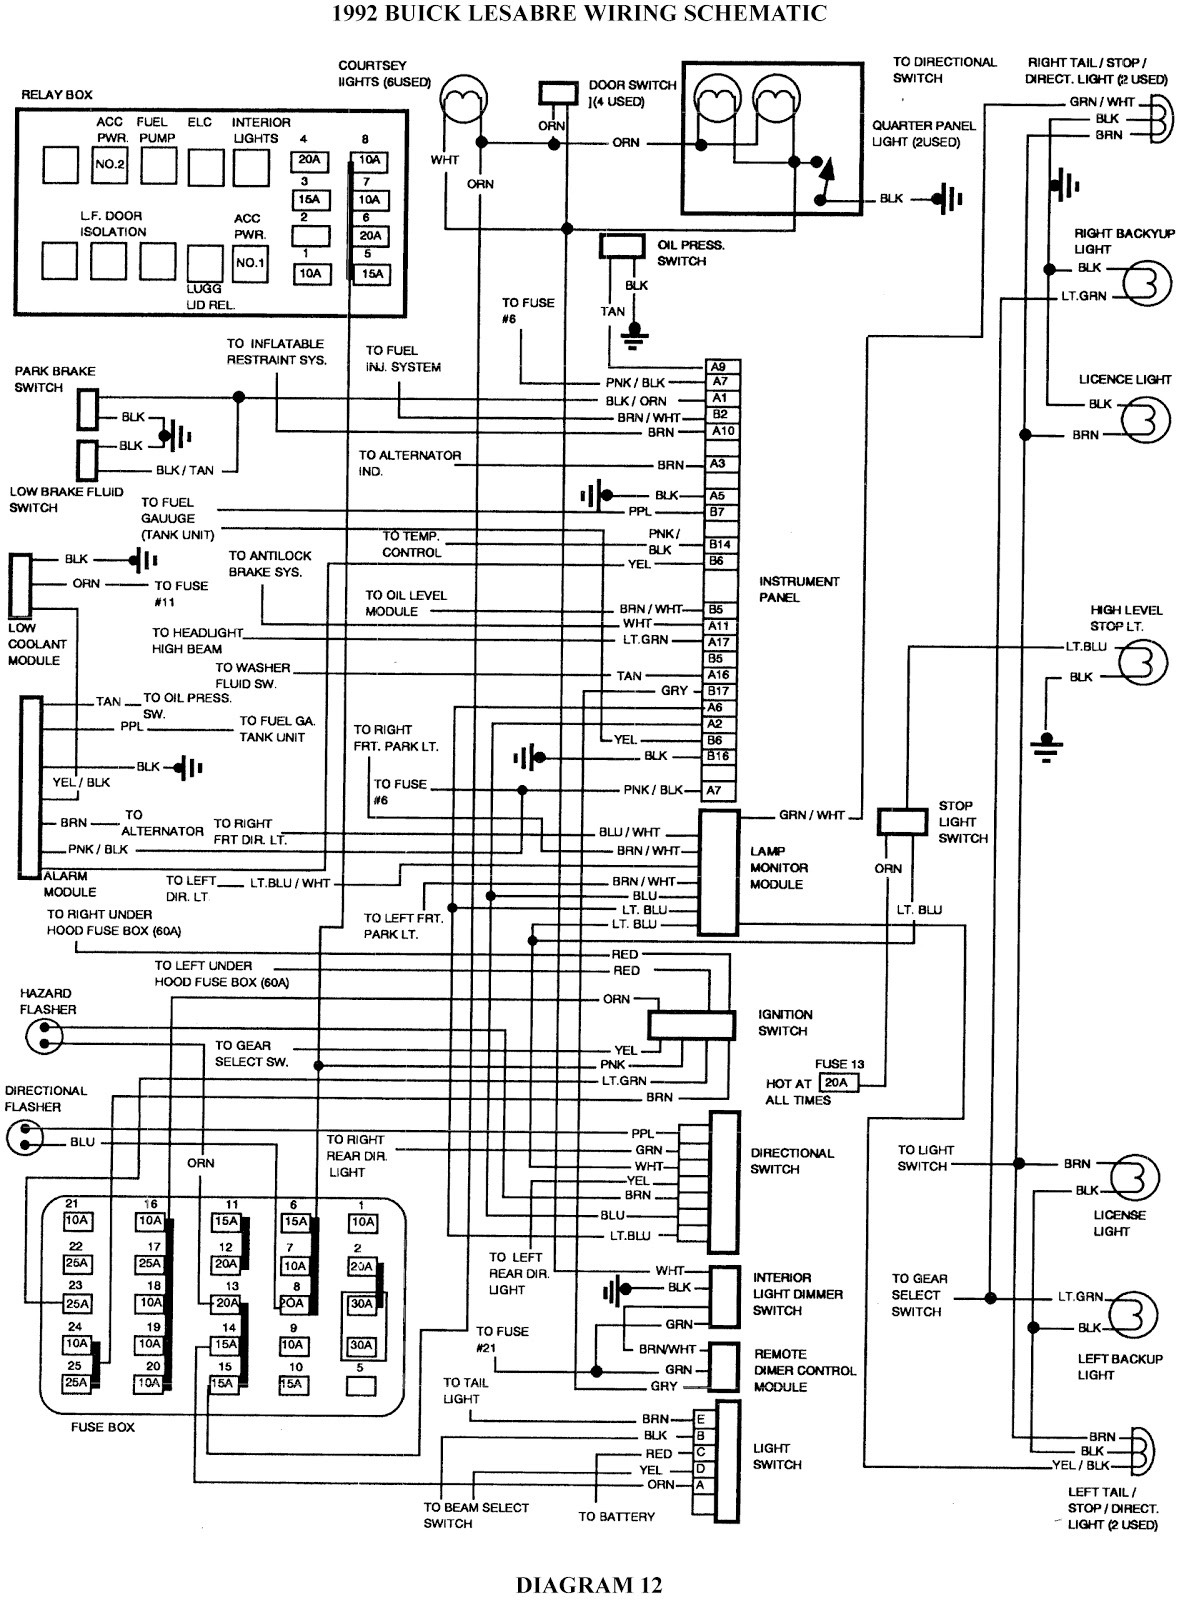 1992 buick lesabre schematic wiring diagrams schematic fuse box diagram for 1996 lincoln town car fuse box diagram for 2004 lincoln town car